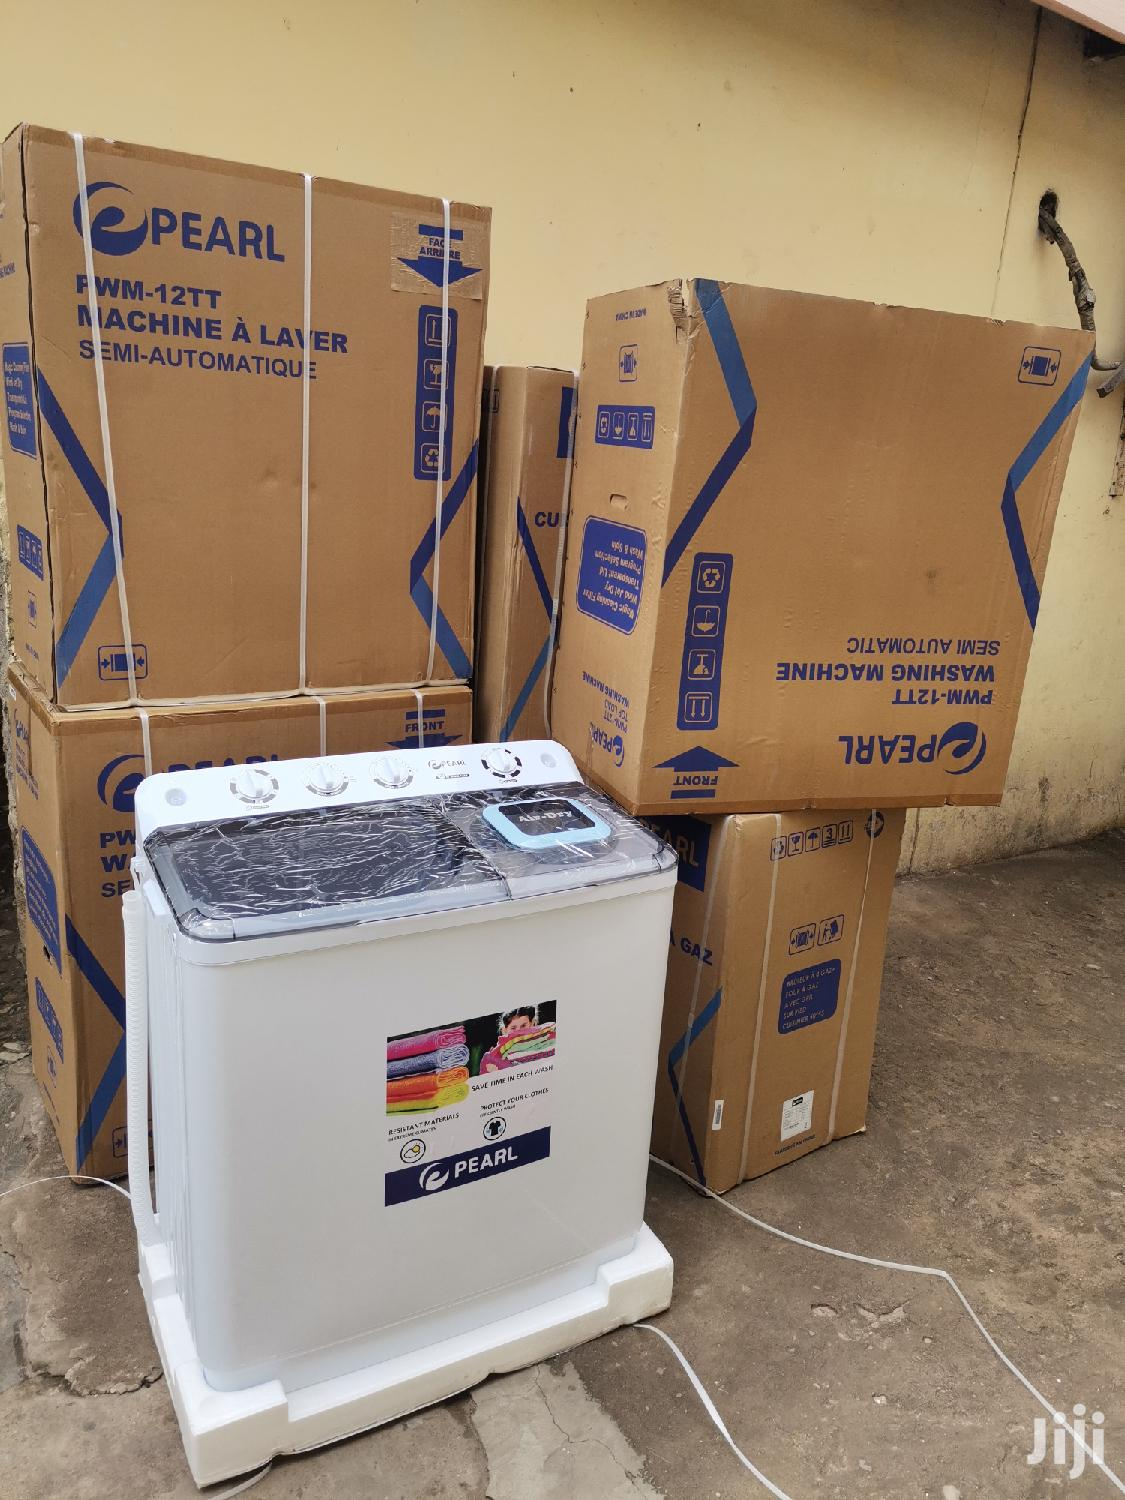 Super Pearl 12kg Washing Machine Semi Automatic